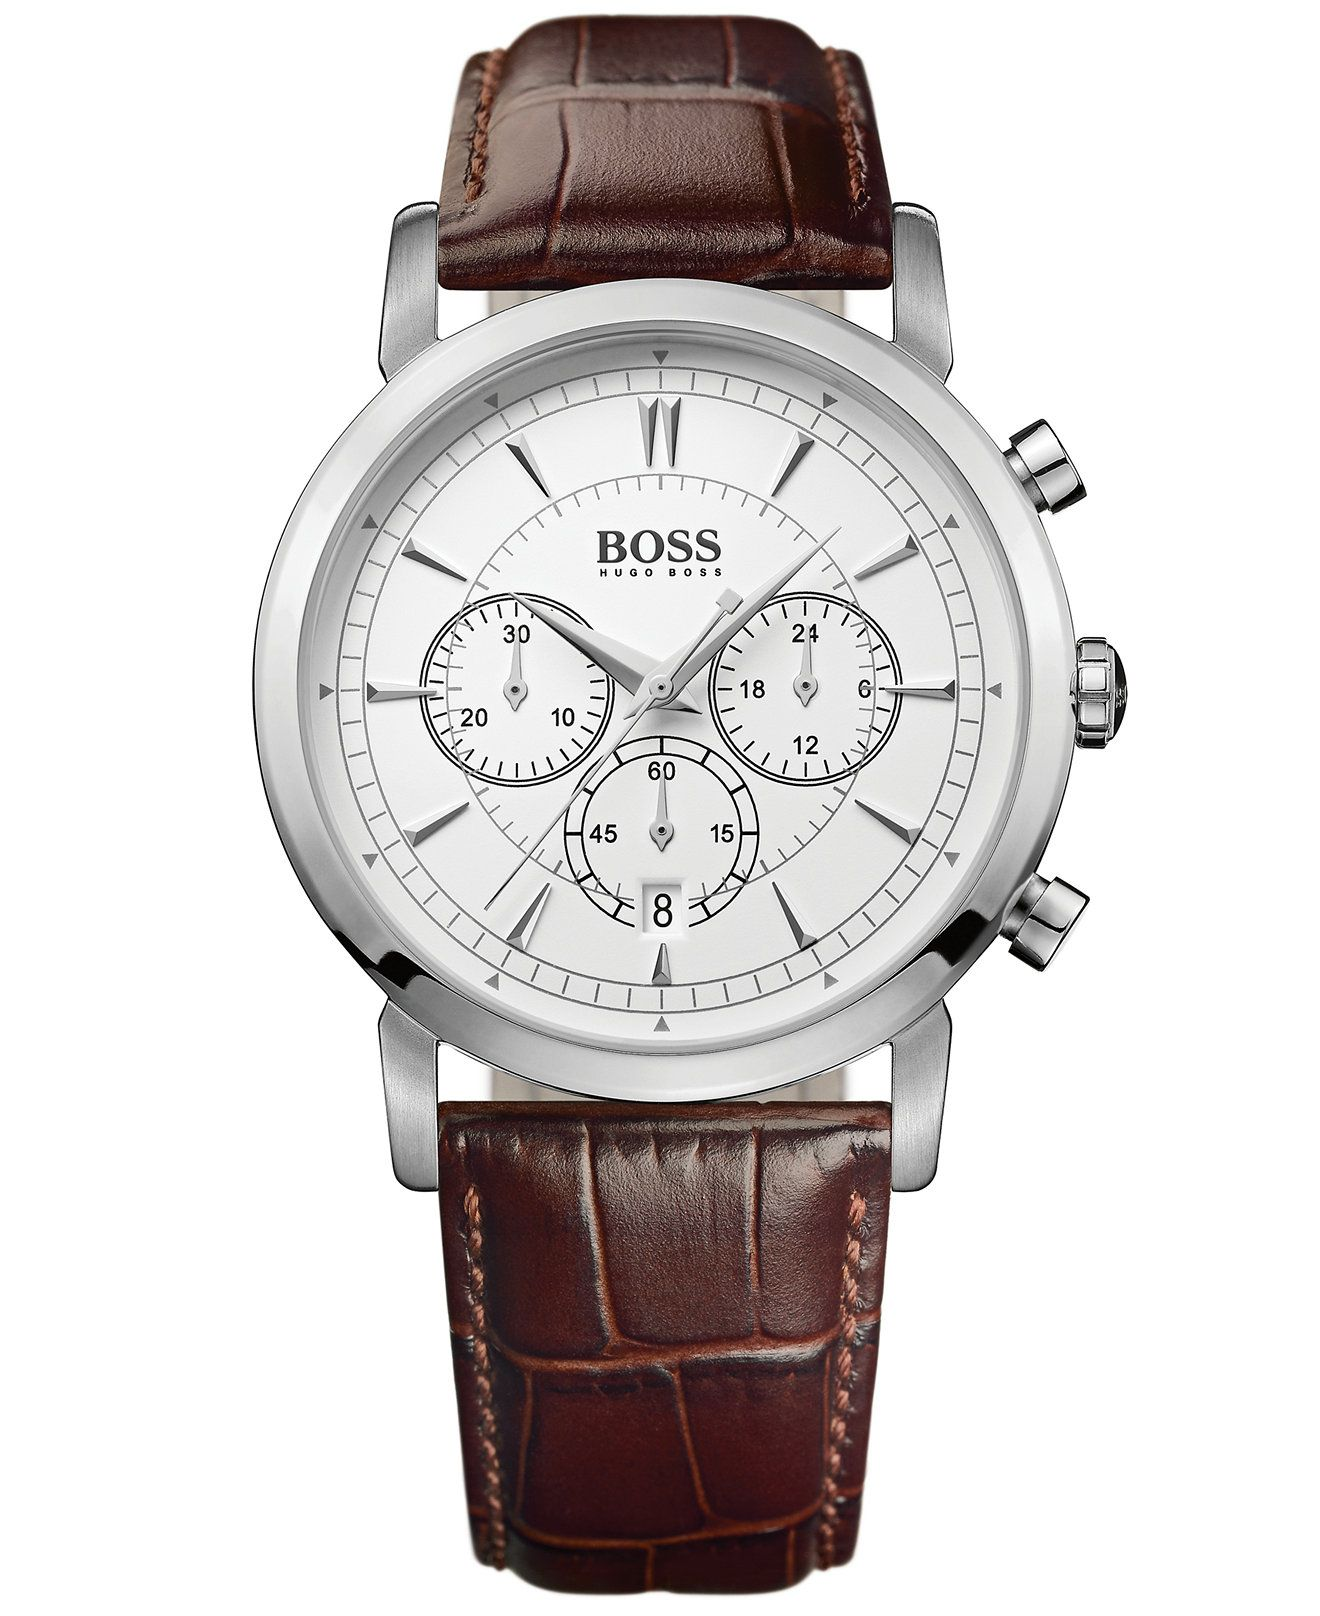 Hugo boss watch men 39 s chronograph brown leather strap 42mm 1512871 men 39 s watches jewelry for Hugo boss watches